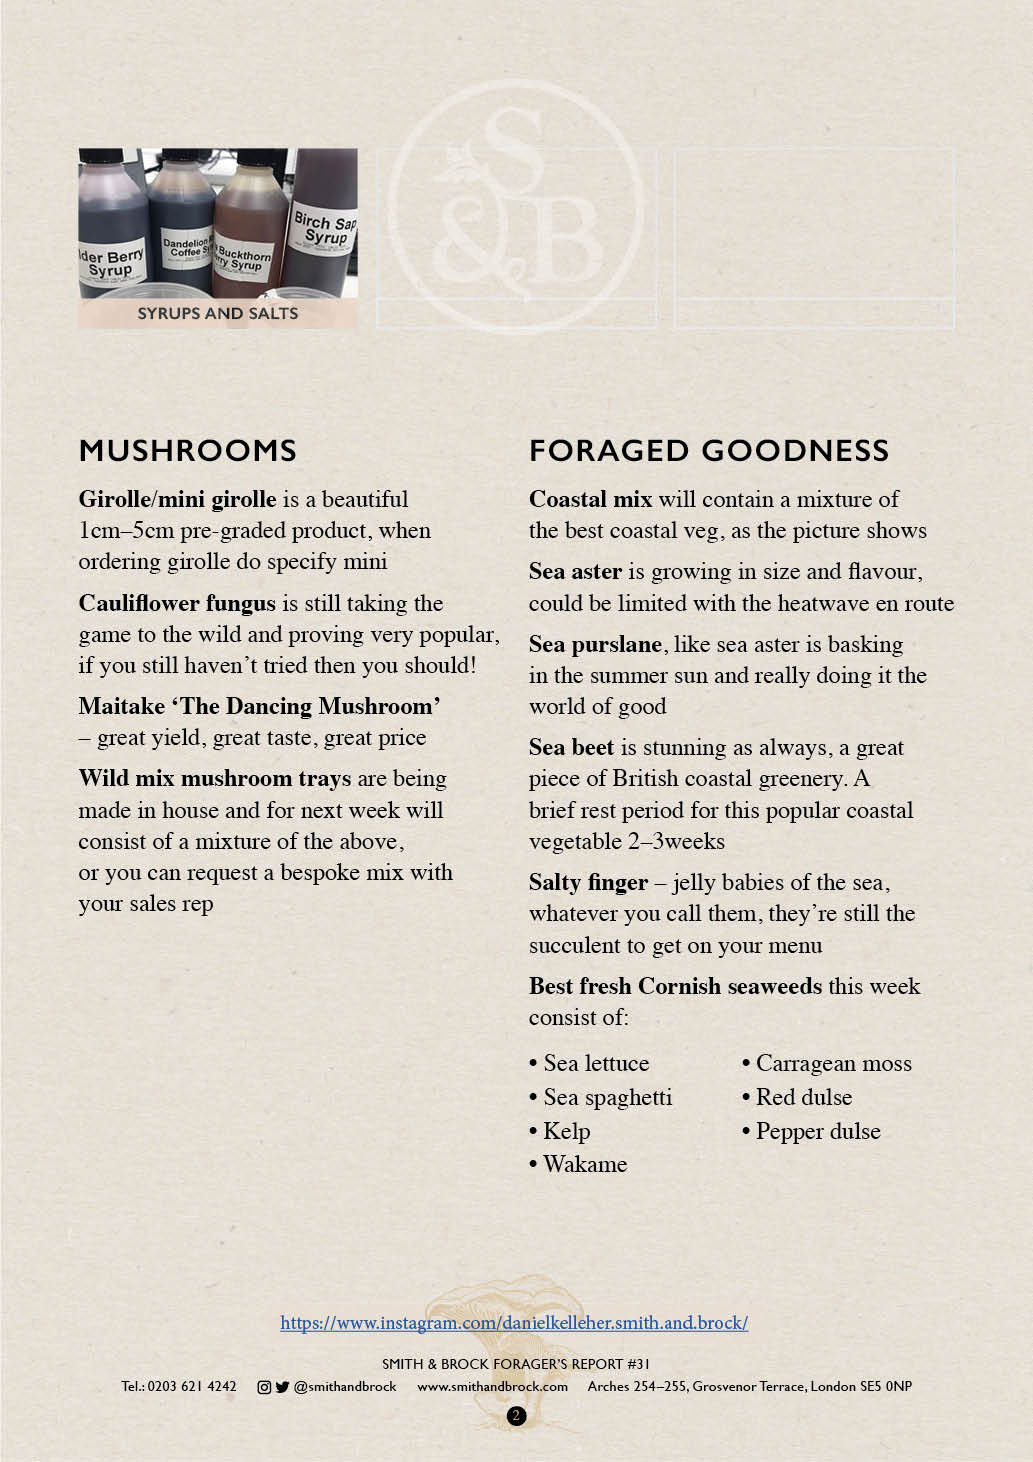 Smith&Brock Foraged Products Report 04 Nov 2019 312